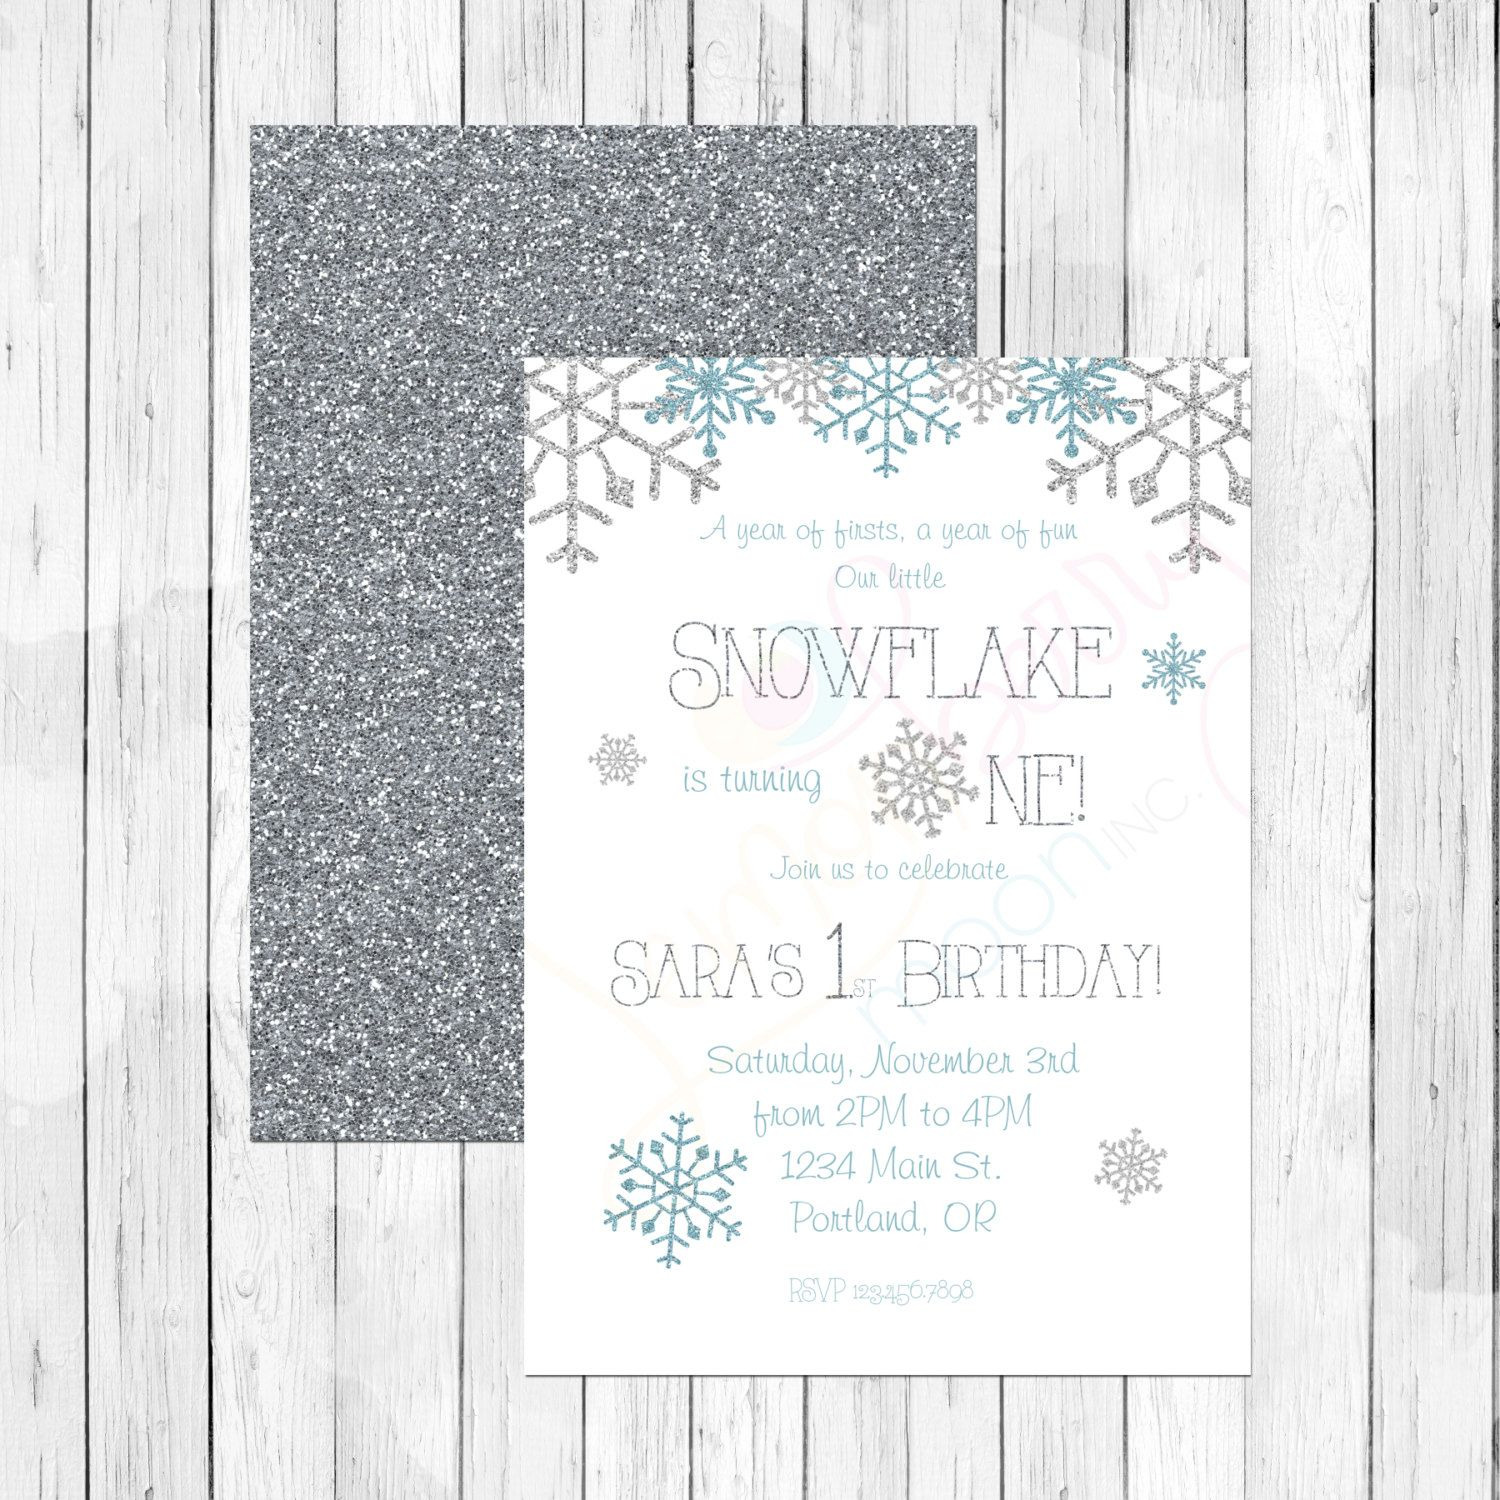 Our Little Snowflake First Birthday Invitation or Evite Frozen